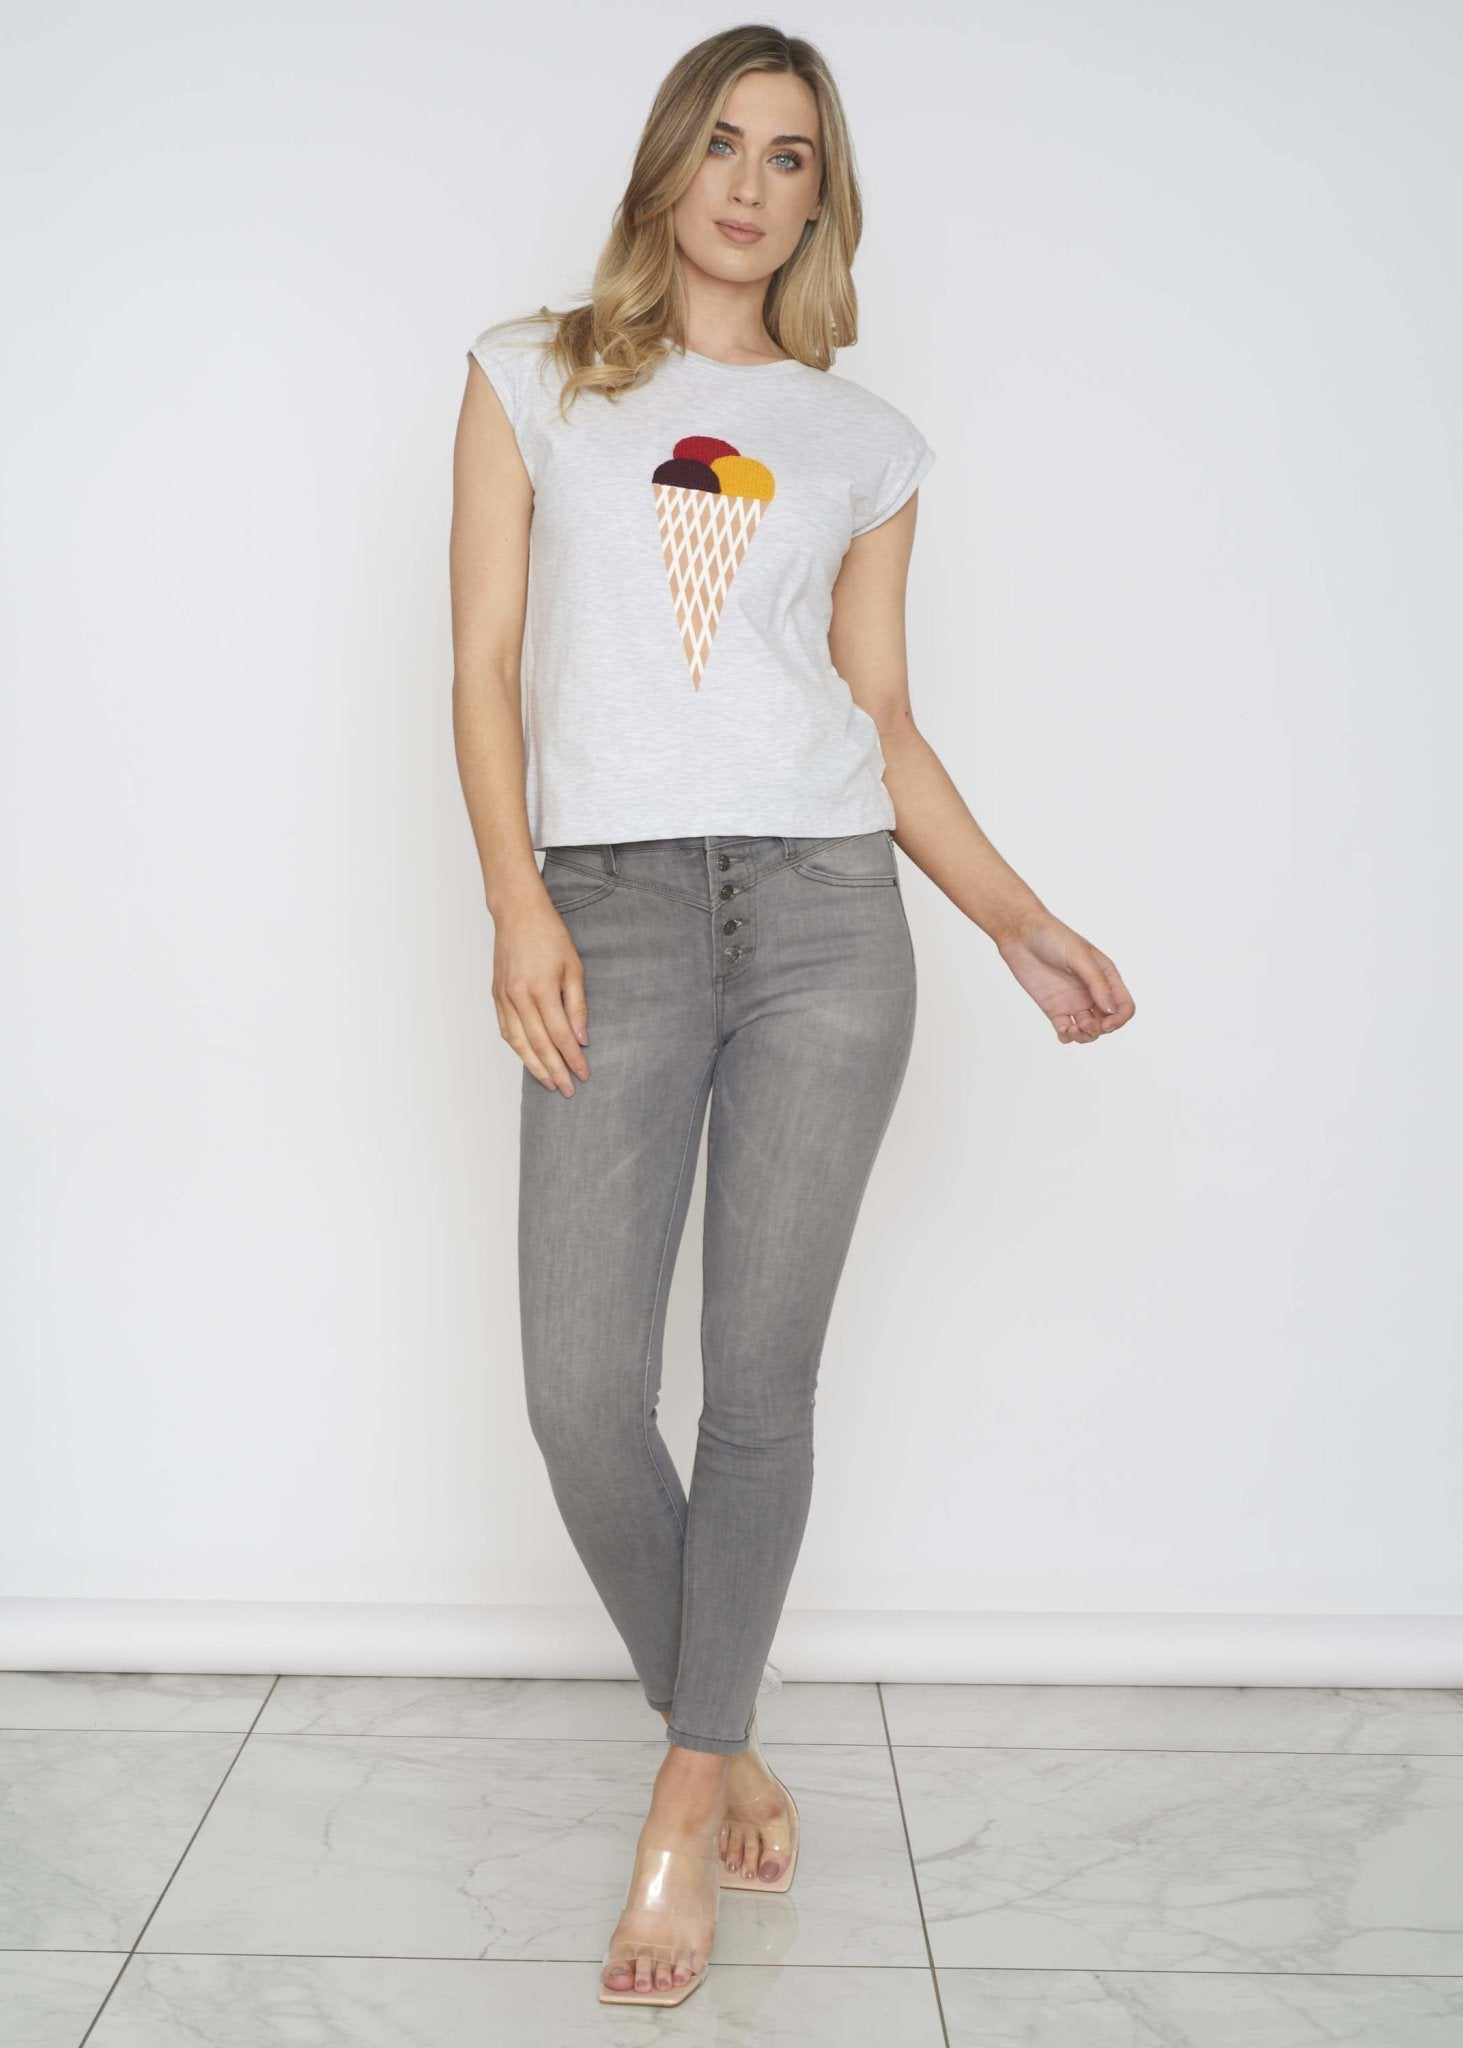 Frankie Ice Cream T-Shirt In Grey - The Walk in Wardrobe